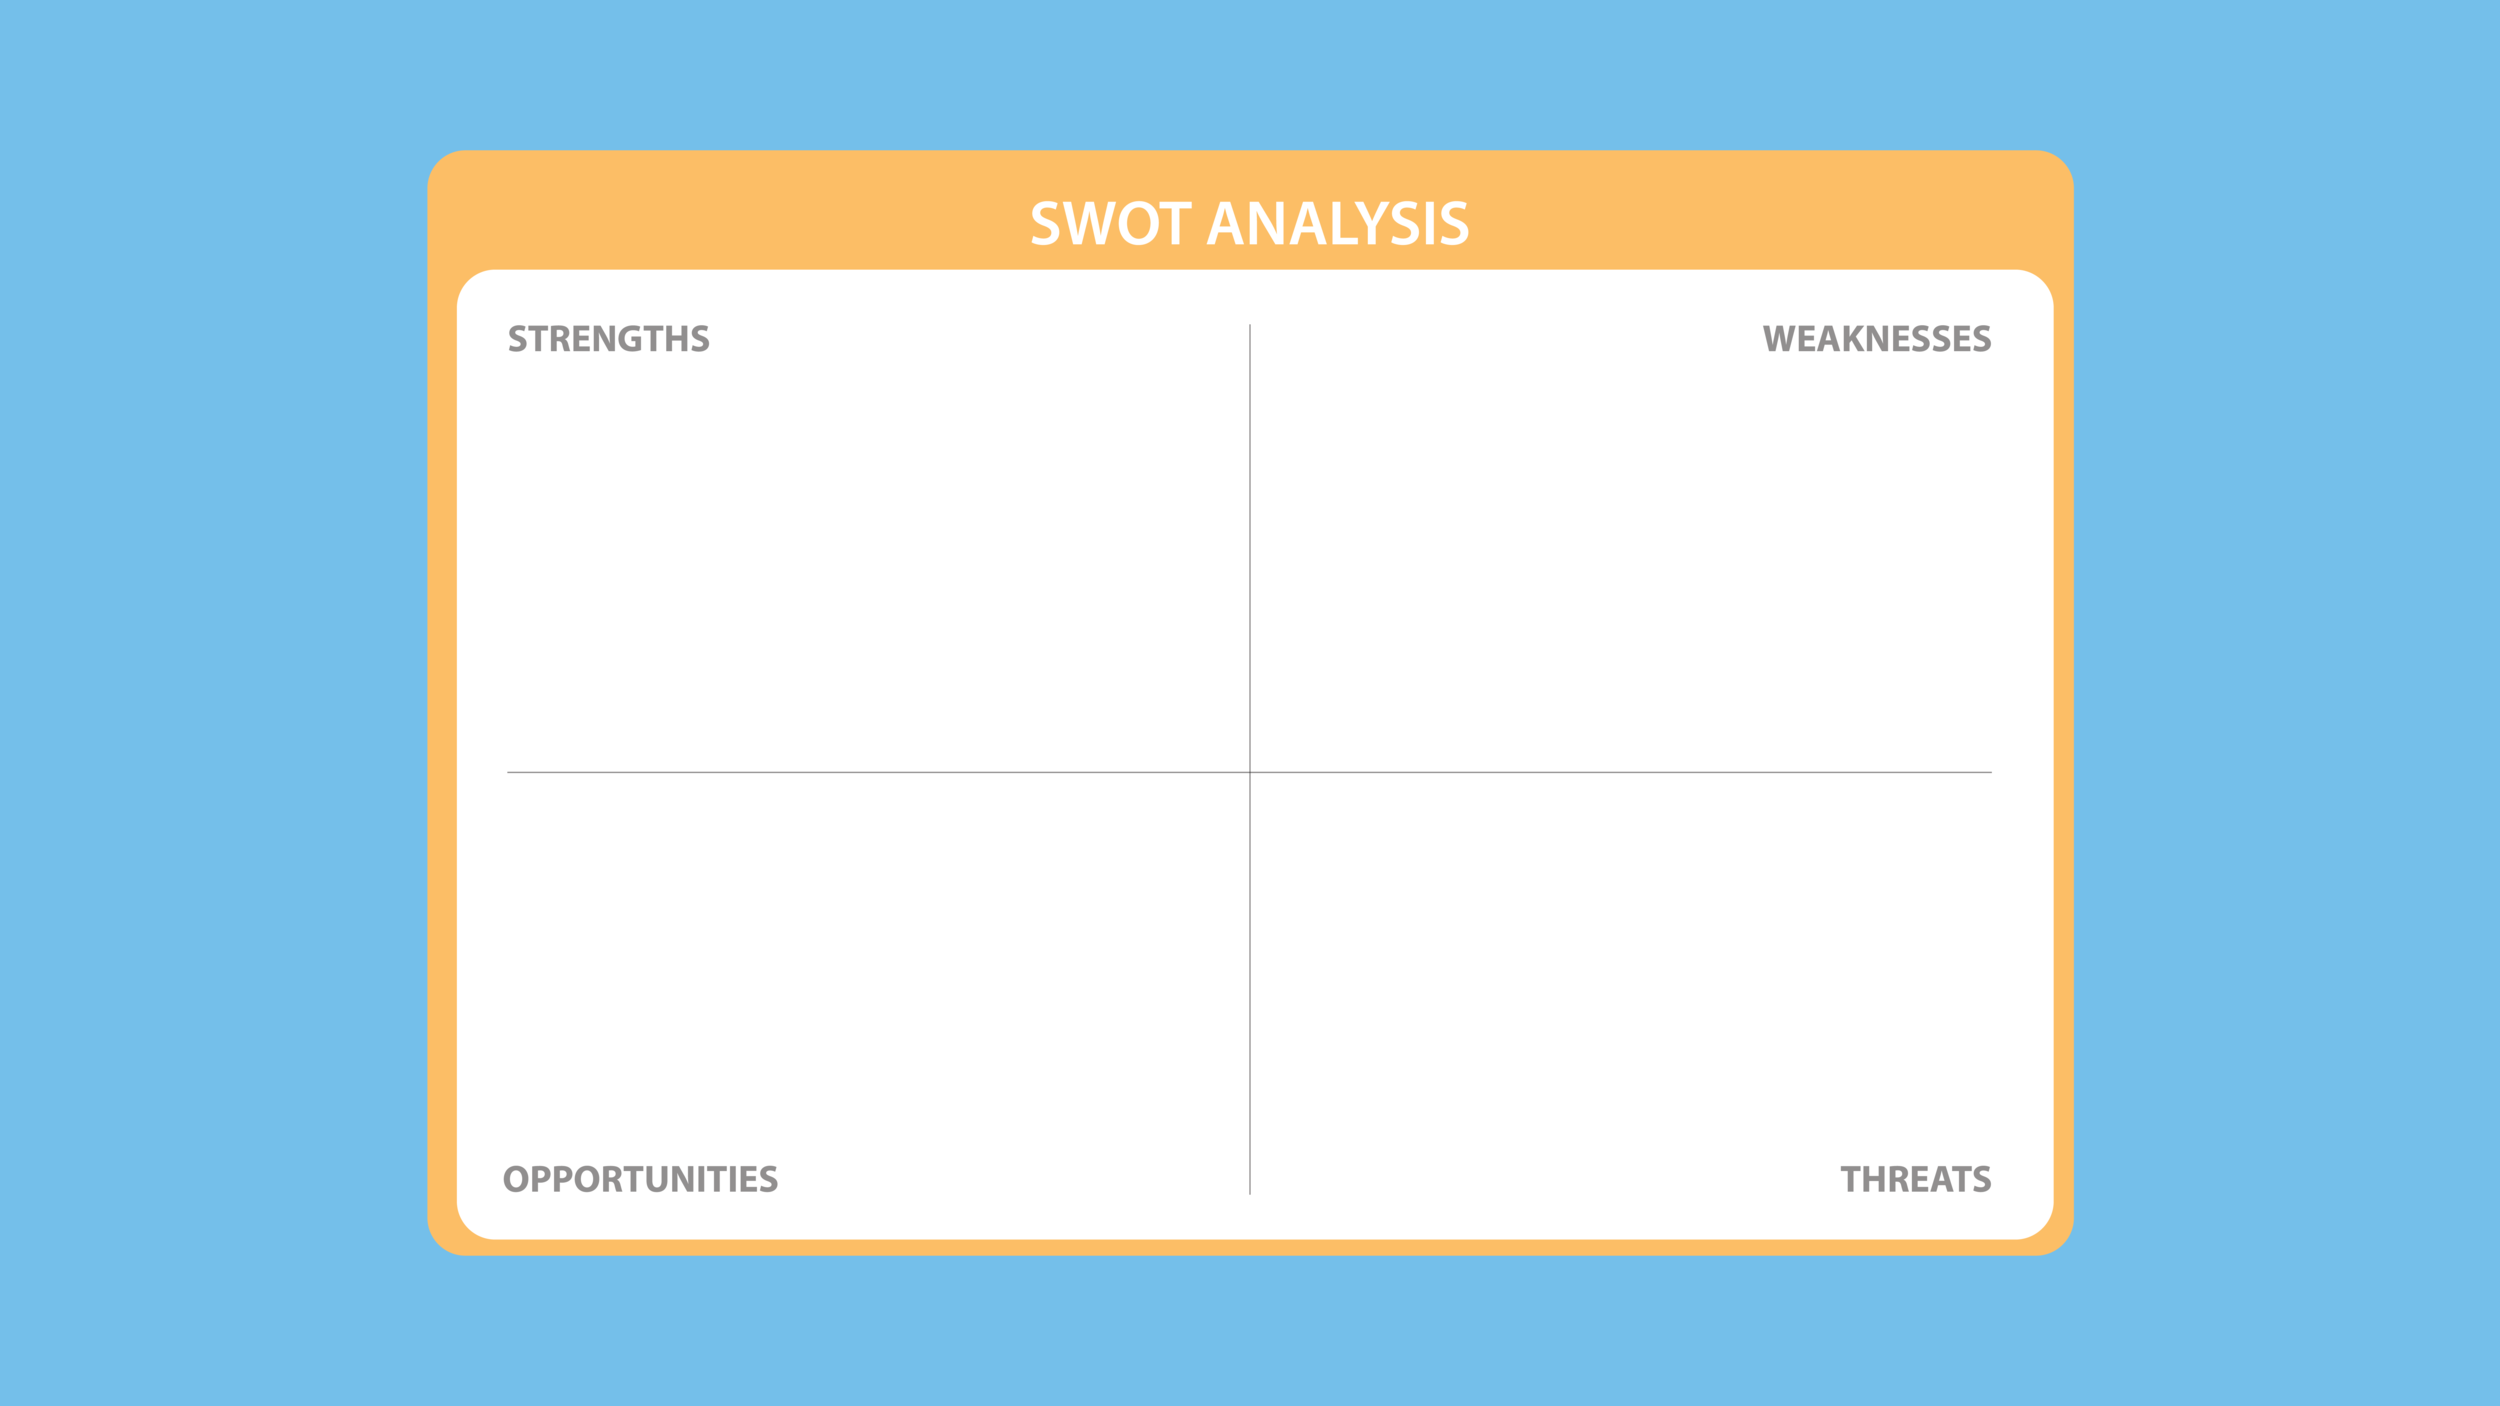 A SWOT analysis can help you to understand the situation and form an effective strategy.